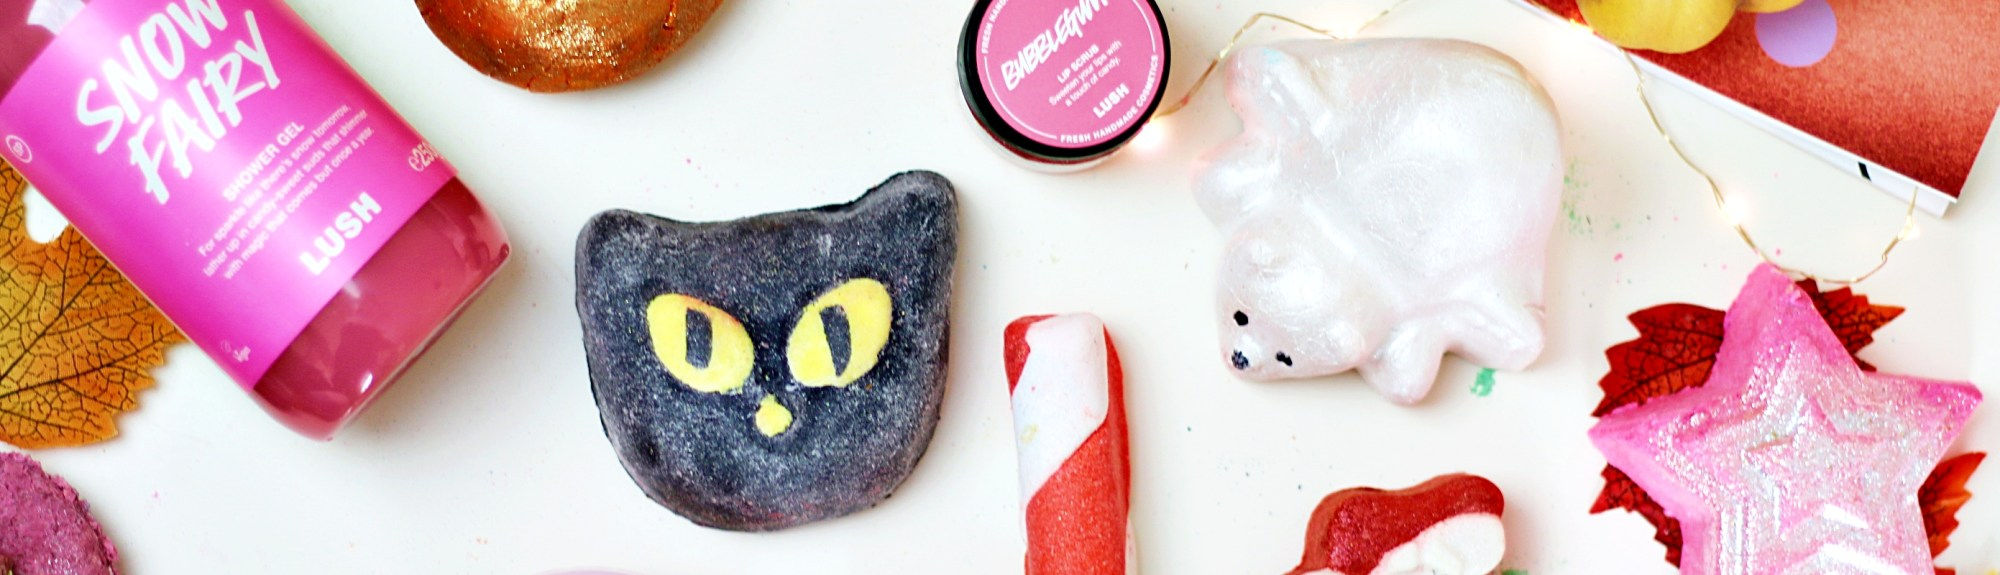 My Insane Lush Christmas & Halloween 2019 Haul